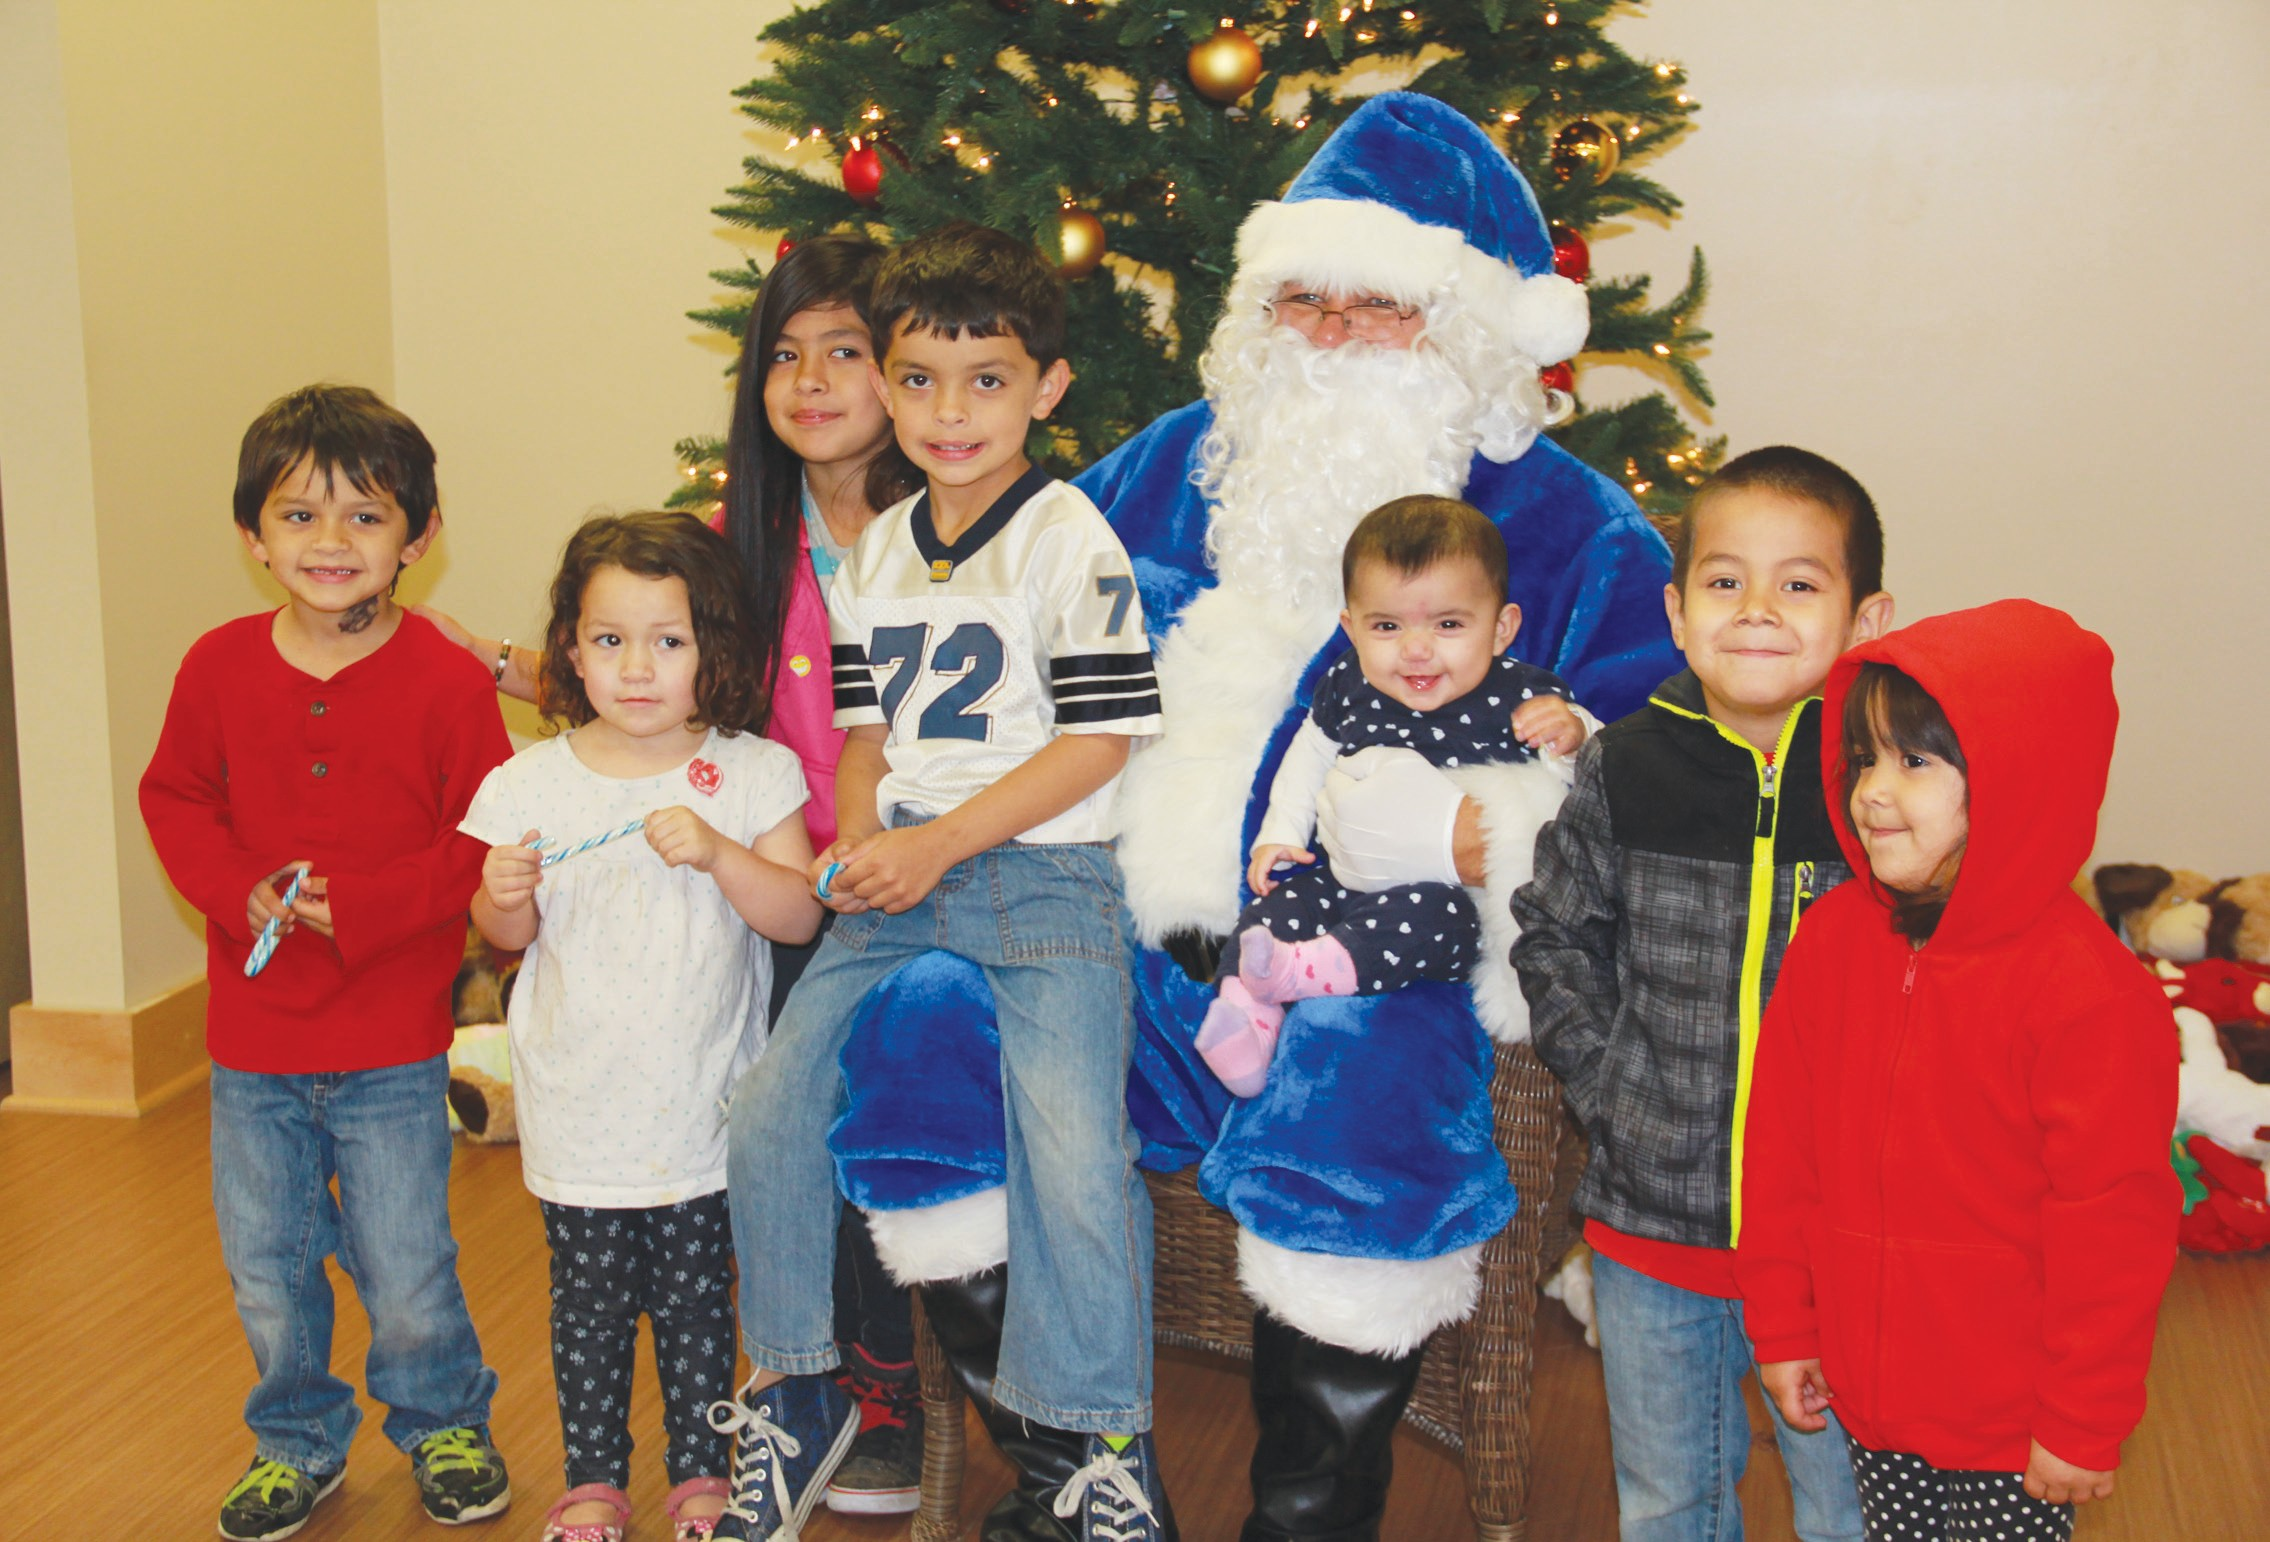 Erika Vela | PLEA SANTON Local children visited with Blue Santa and received stuffed animals and gifts donated by the community.